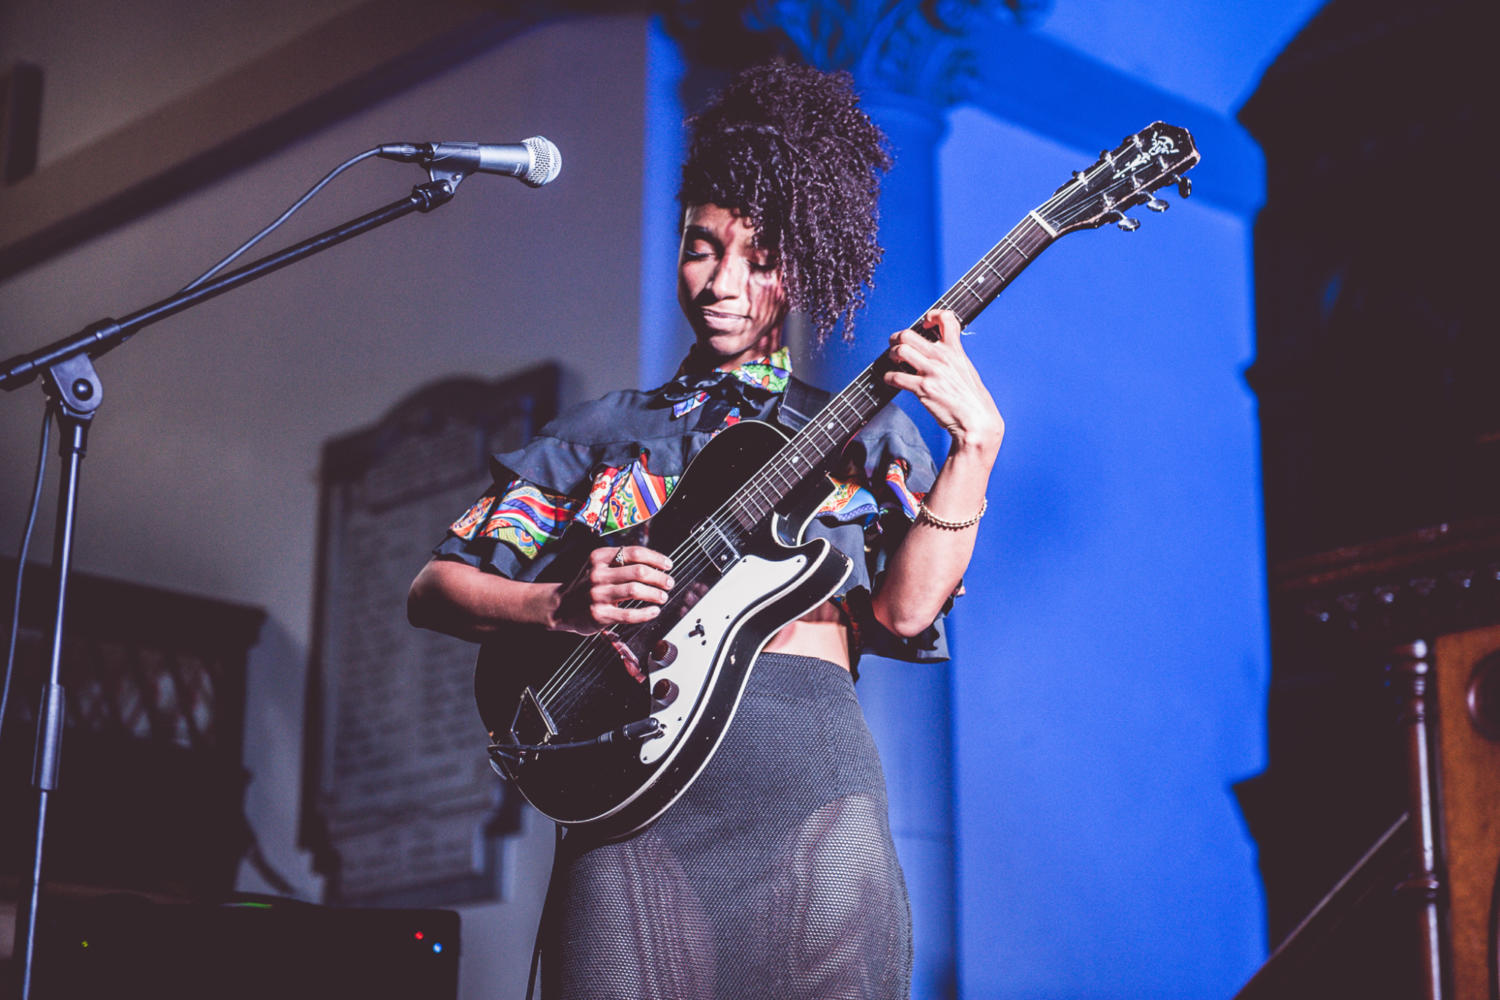 Lianne La Havas, Hackney Round Chapel, London